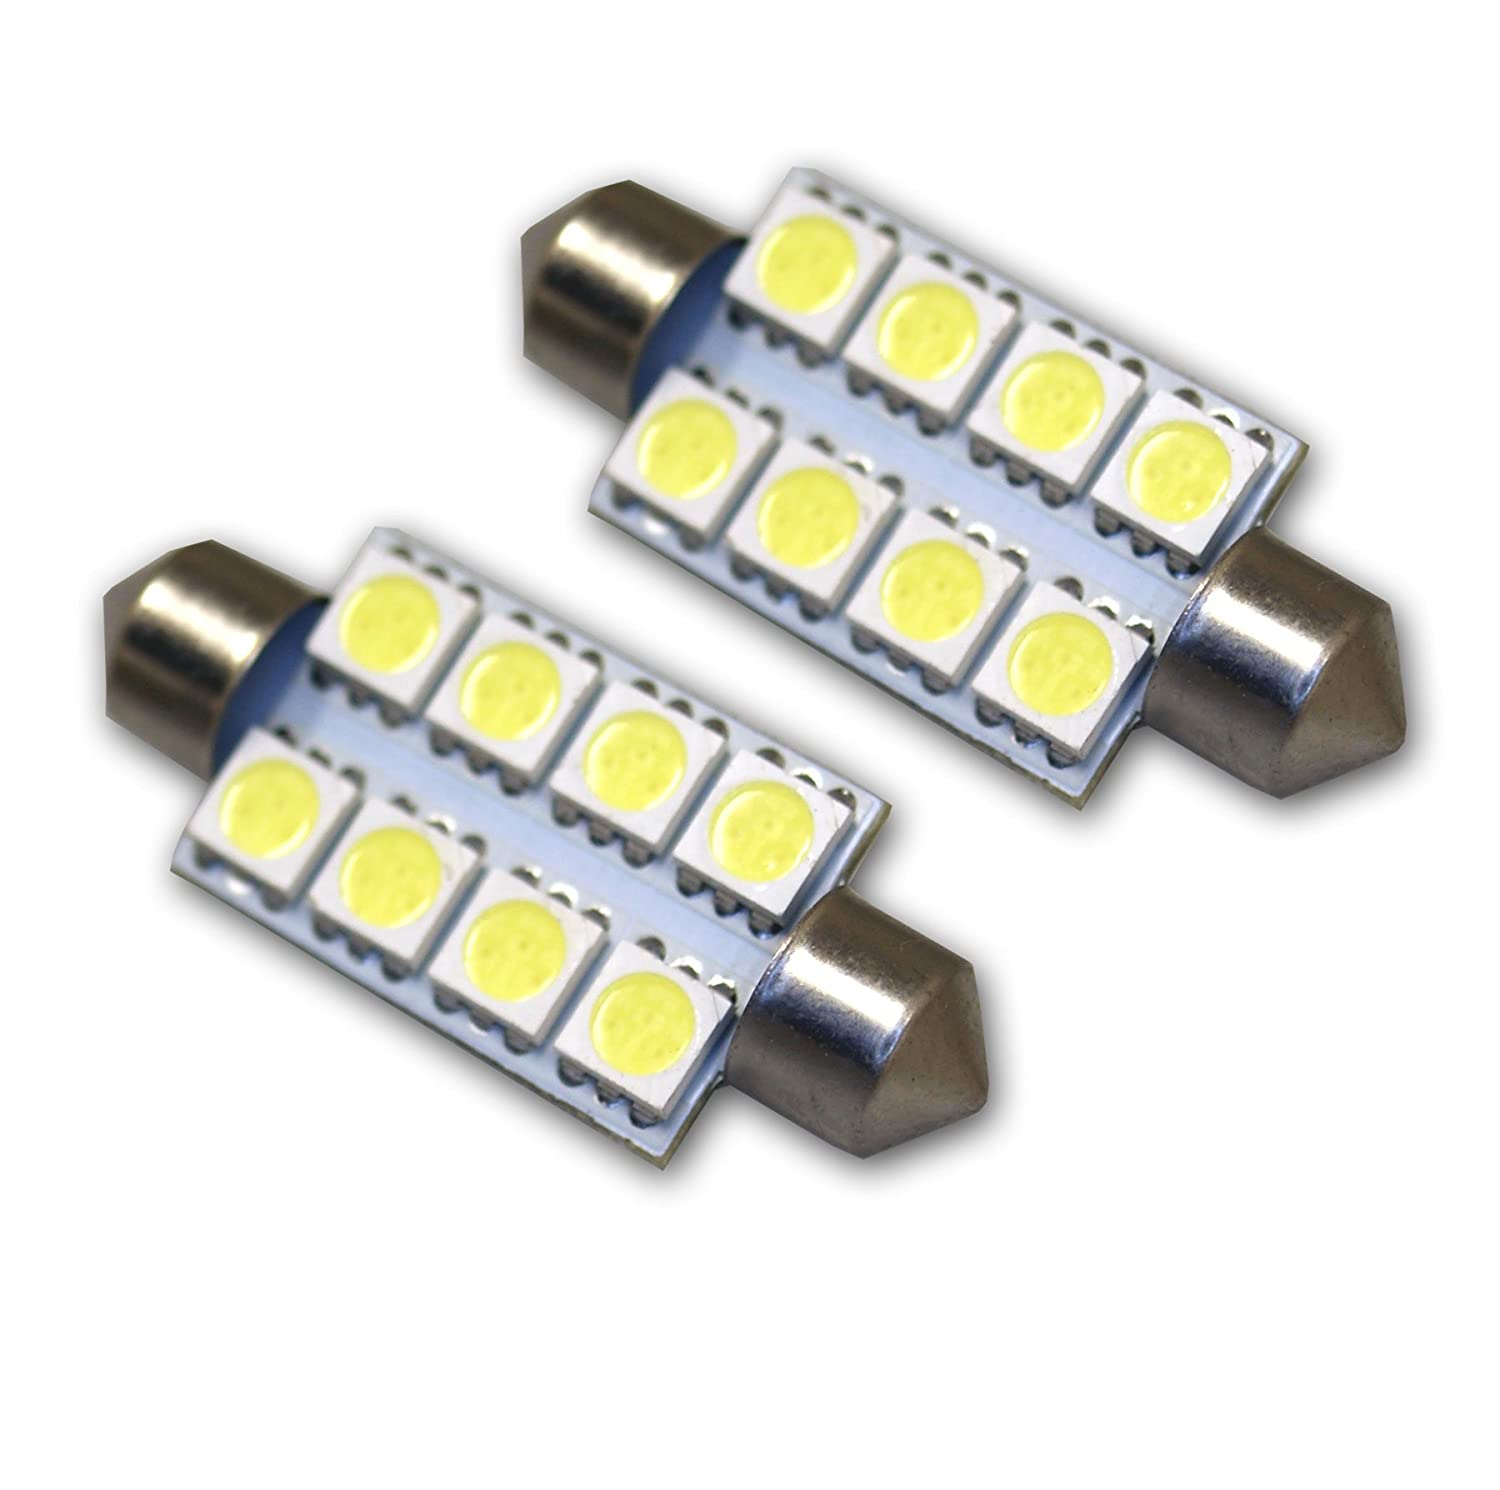 TuningPros LEDUHL-39M-WS8 Under Hood Light LED Light Bulbs Festoon 39mm, 8 SMD LED White 2-pc Set